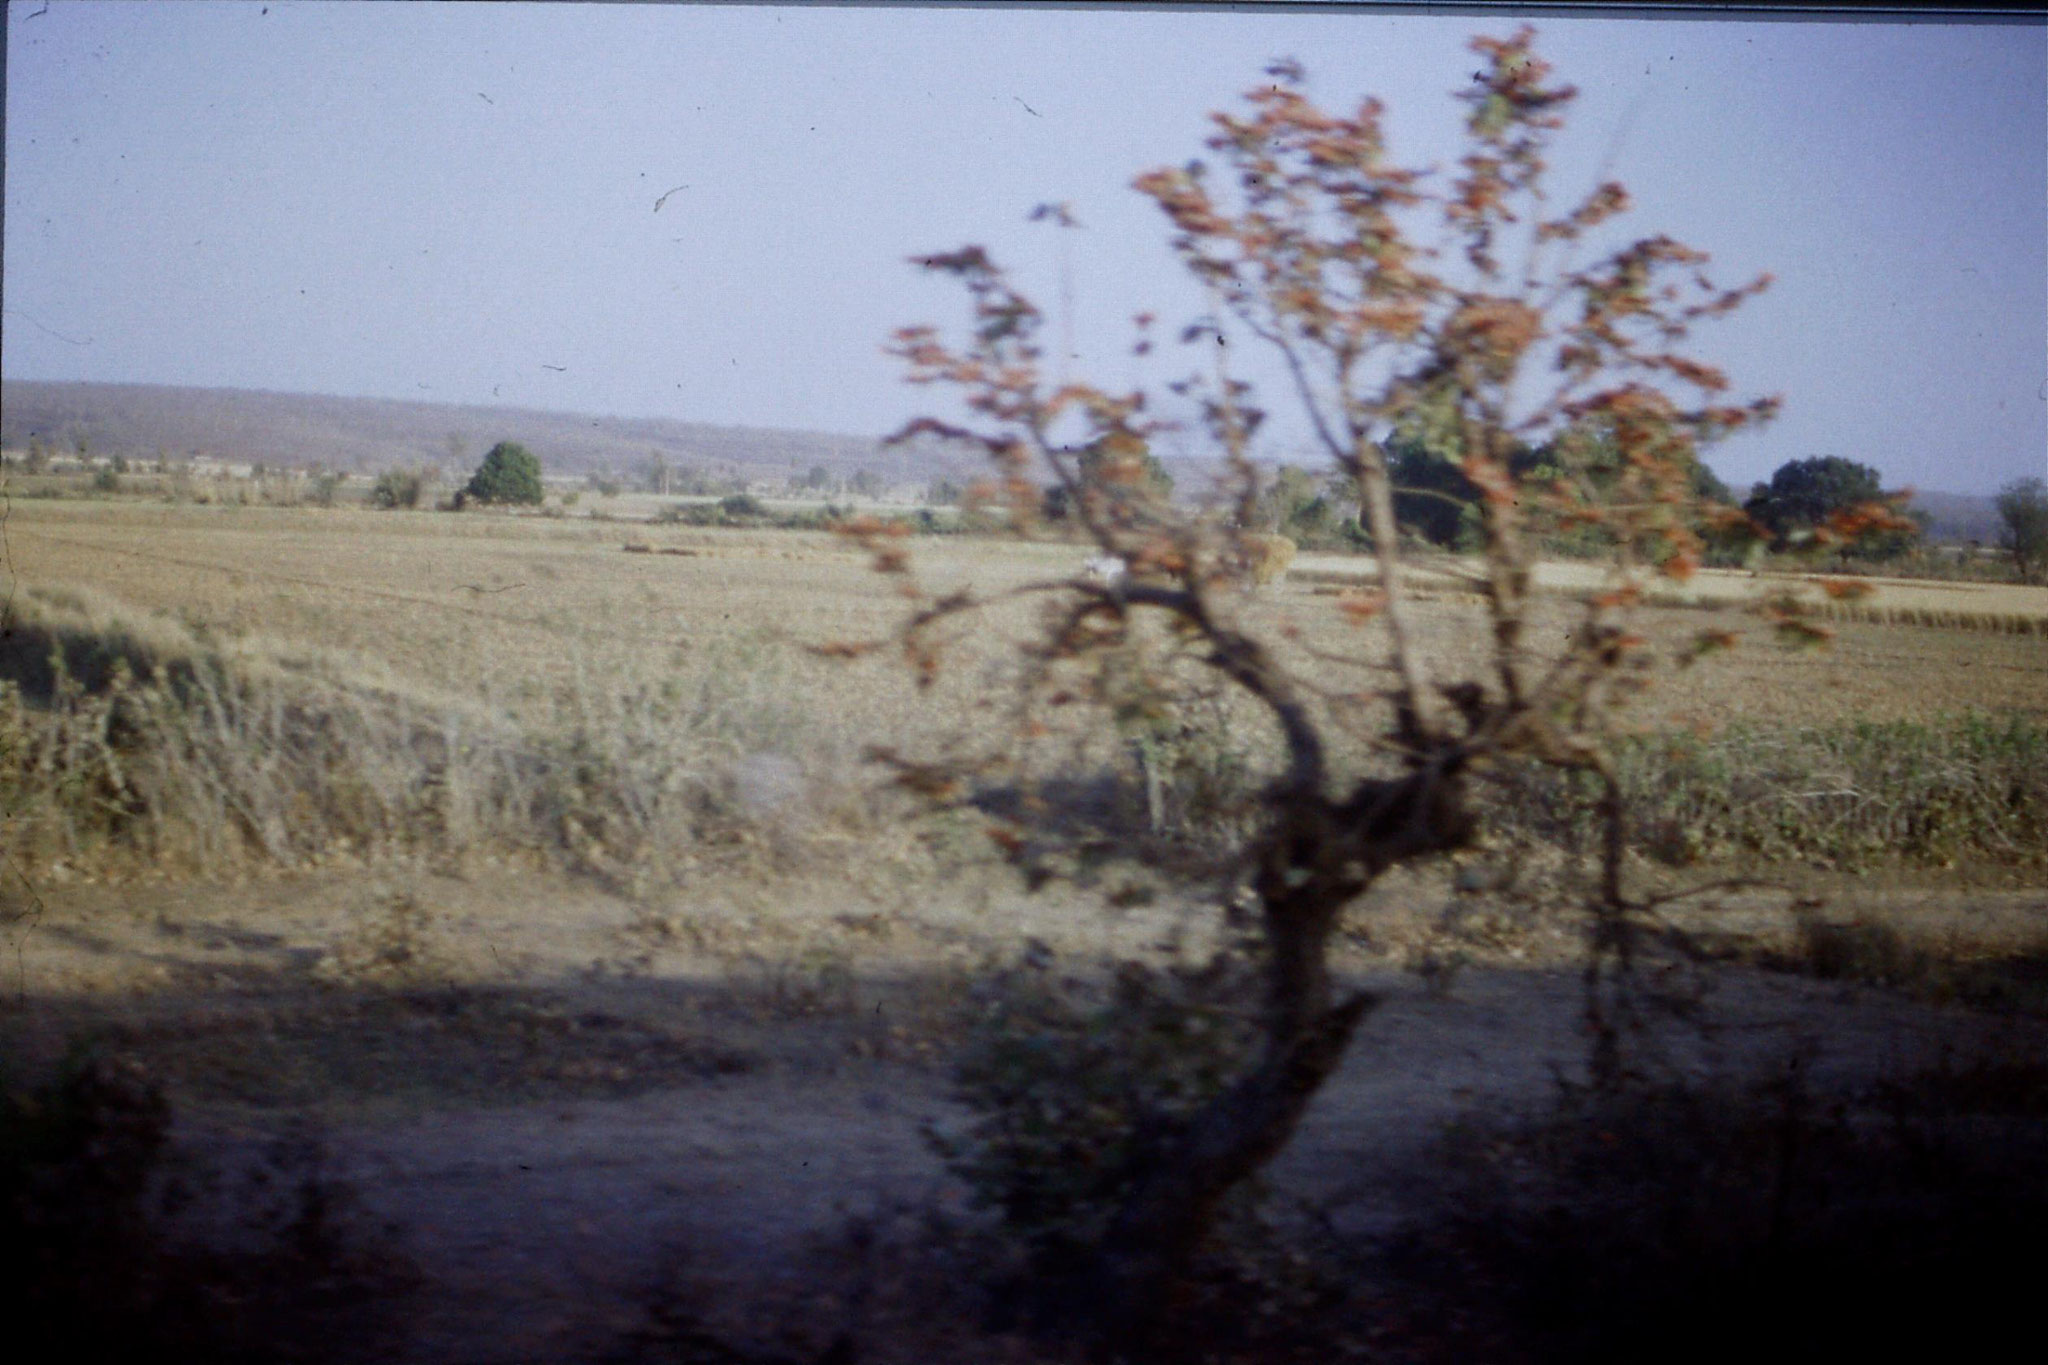 108/30: 24/3/1990 on train soon after Bhopal looking east